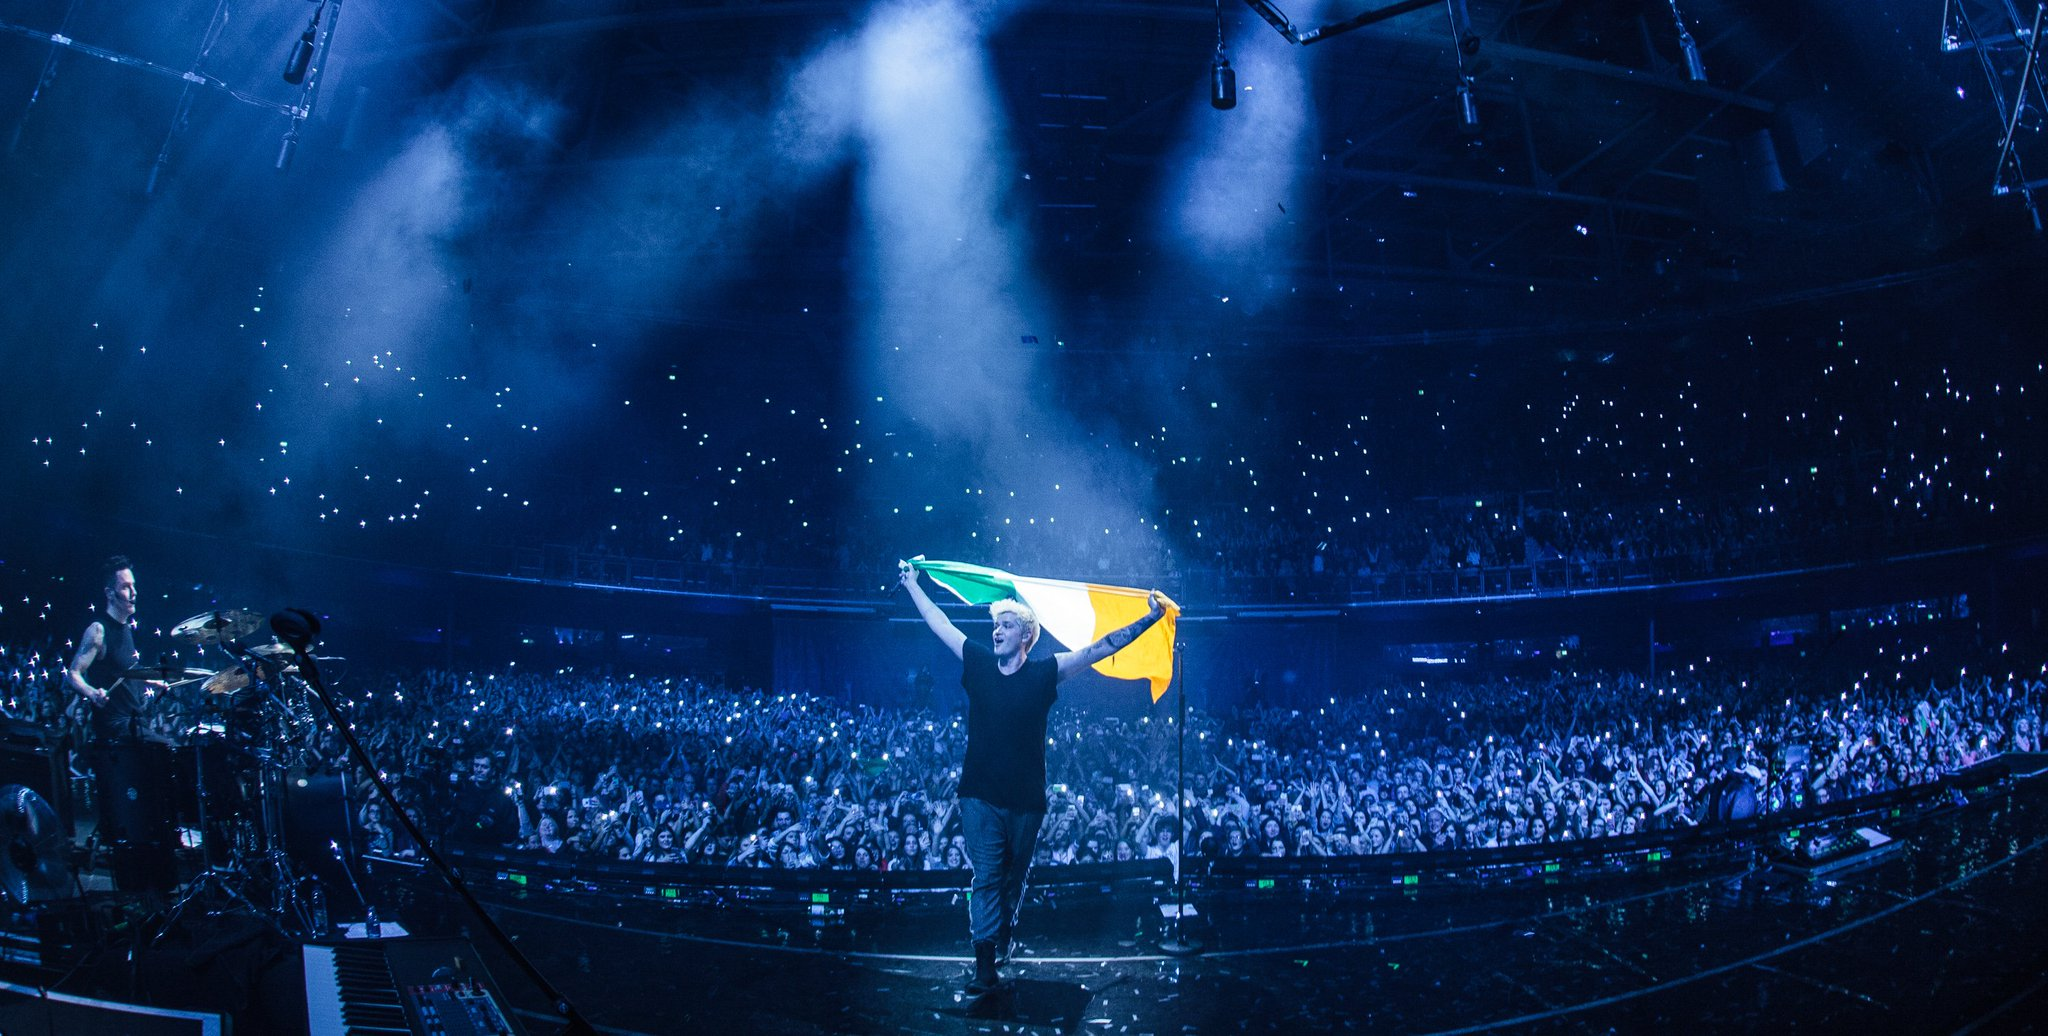 Dublin last night was nuts! ���� Friday night, who's ready for the show? #FreedomChildTour https://t.co/ymE2rKhBNw